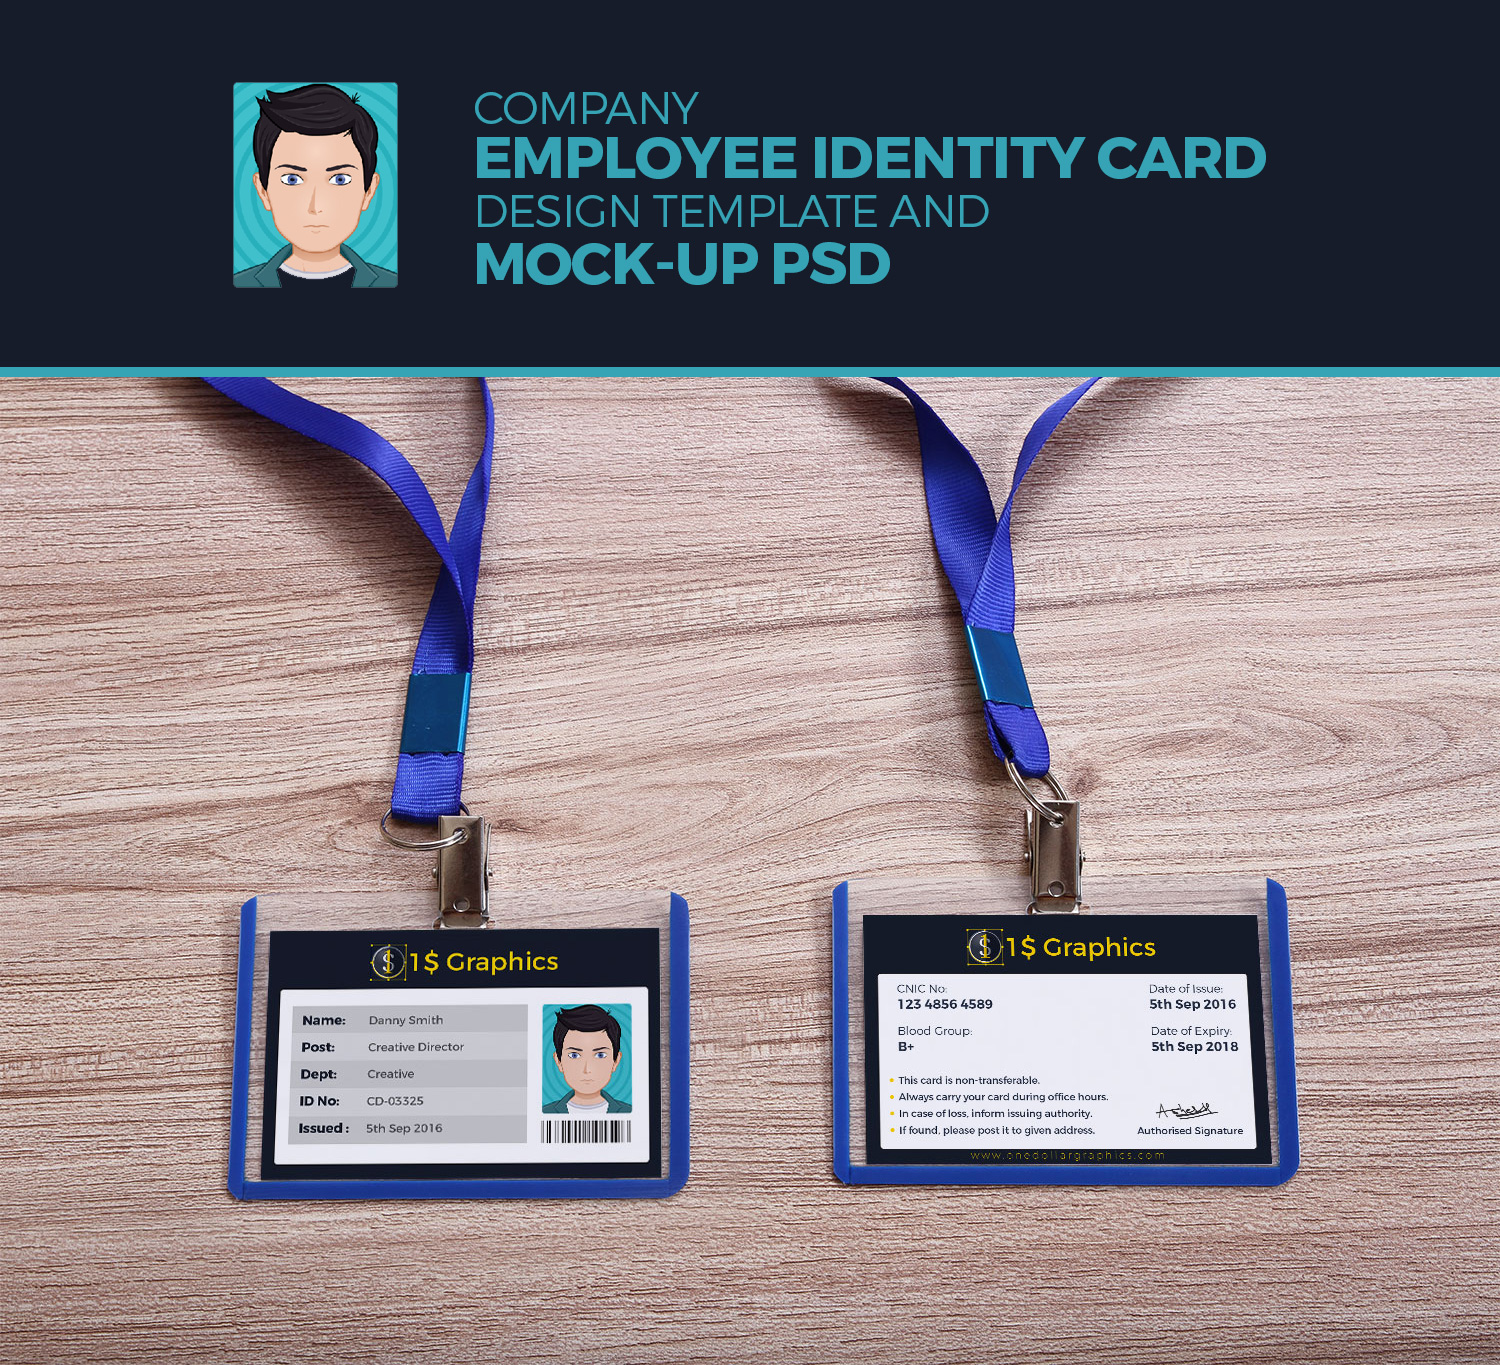 company-employee-identity-card-design-template-and-mock-up-psd-1